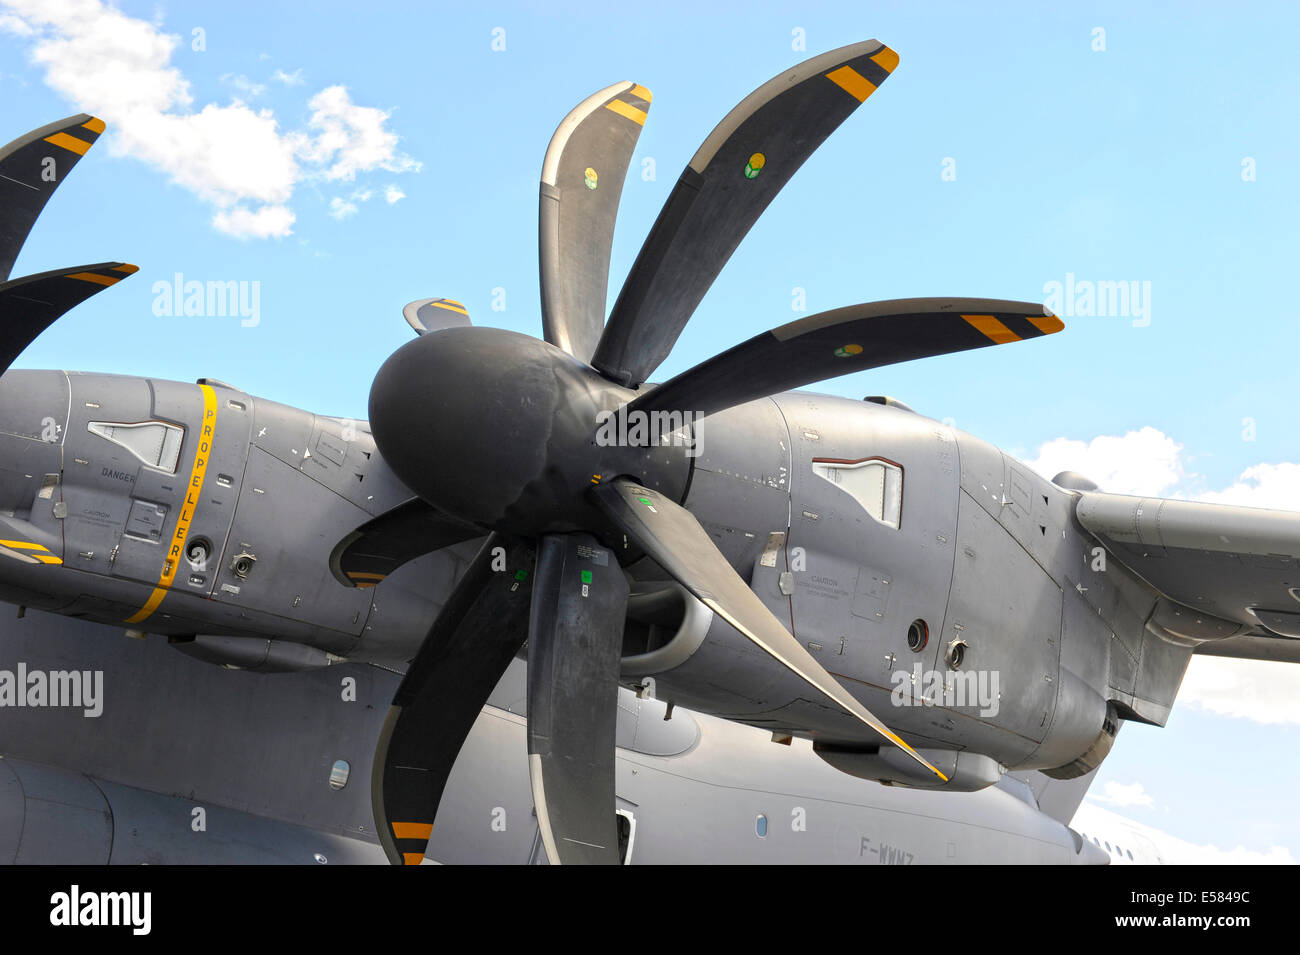 Airbus Military A400M propeller detail - Stock Image